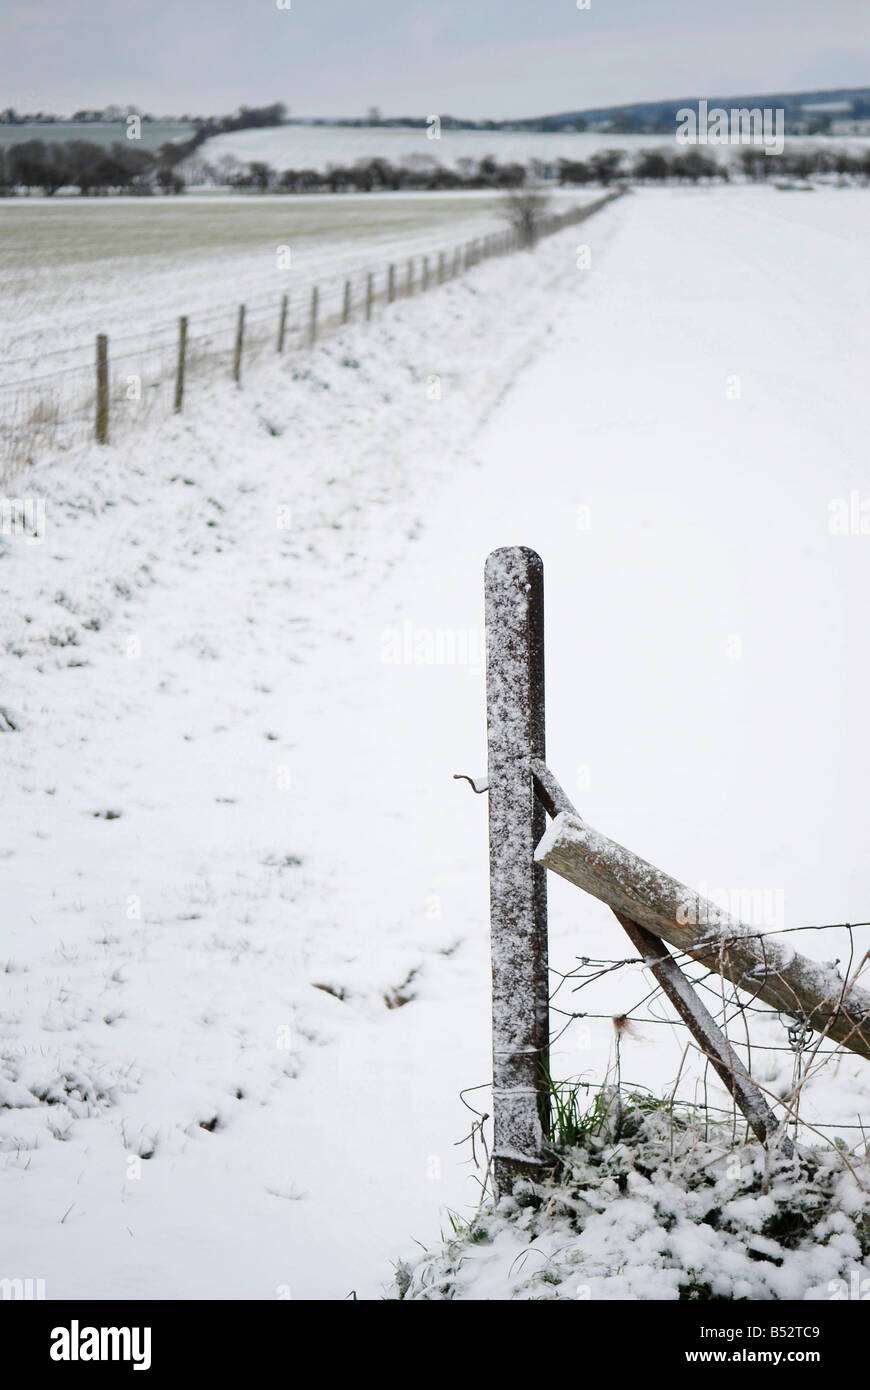 fencepost and field under light snow - Stock Image